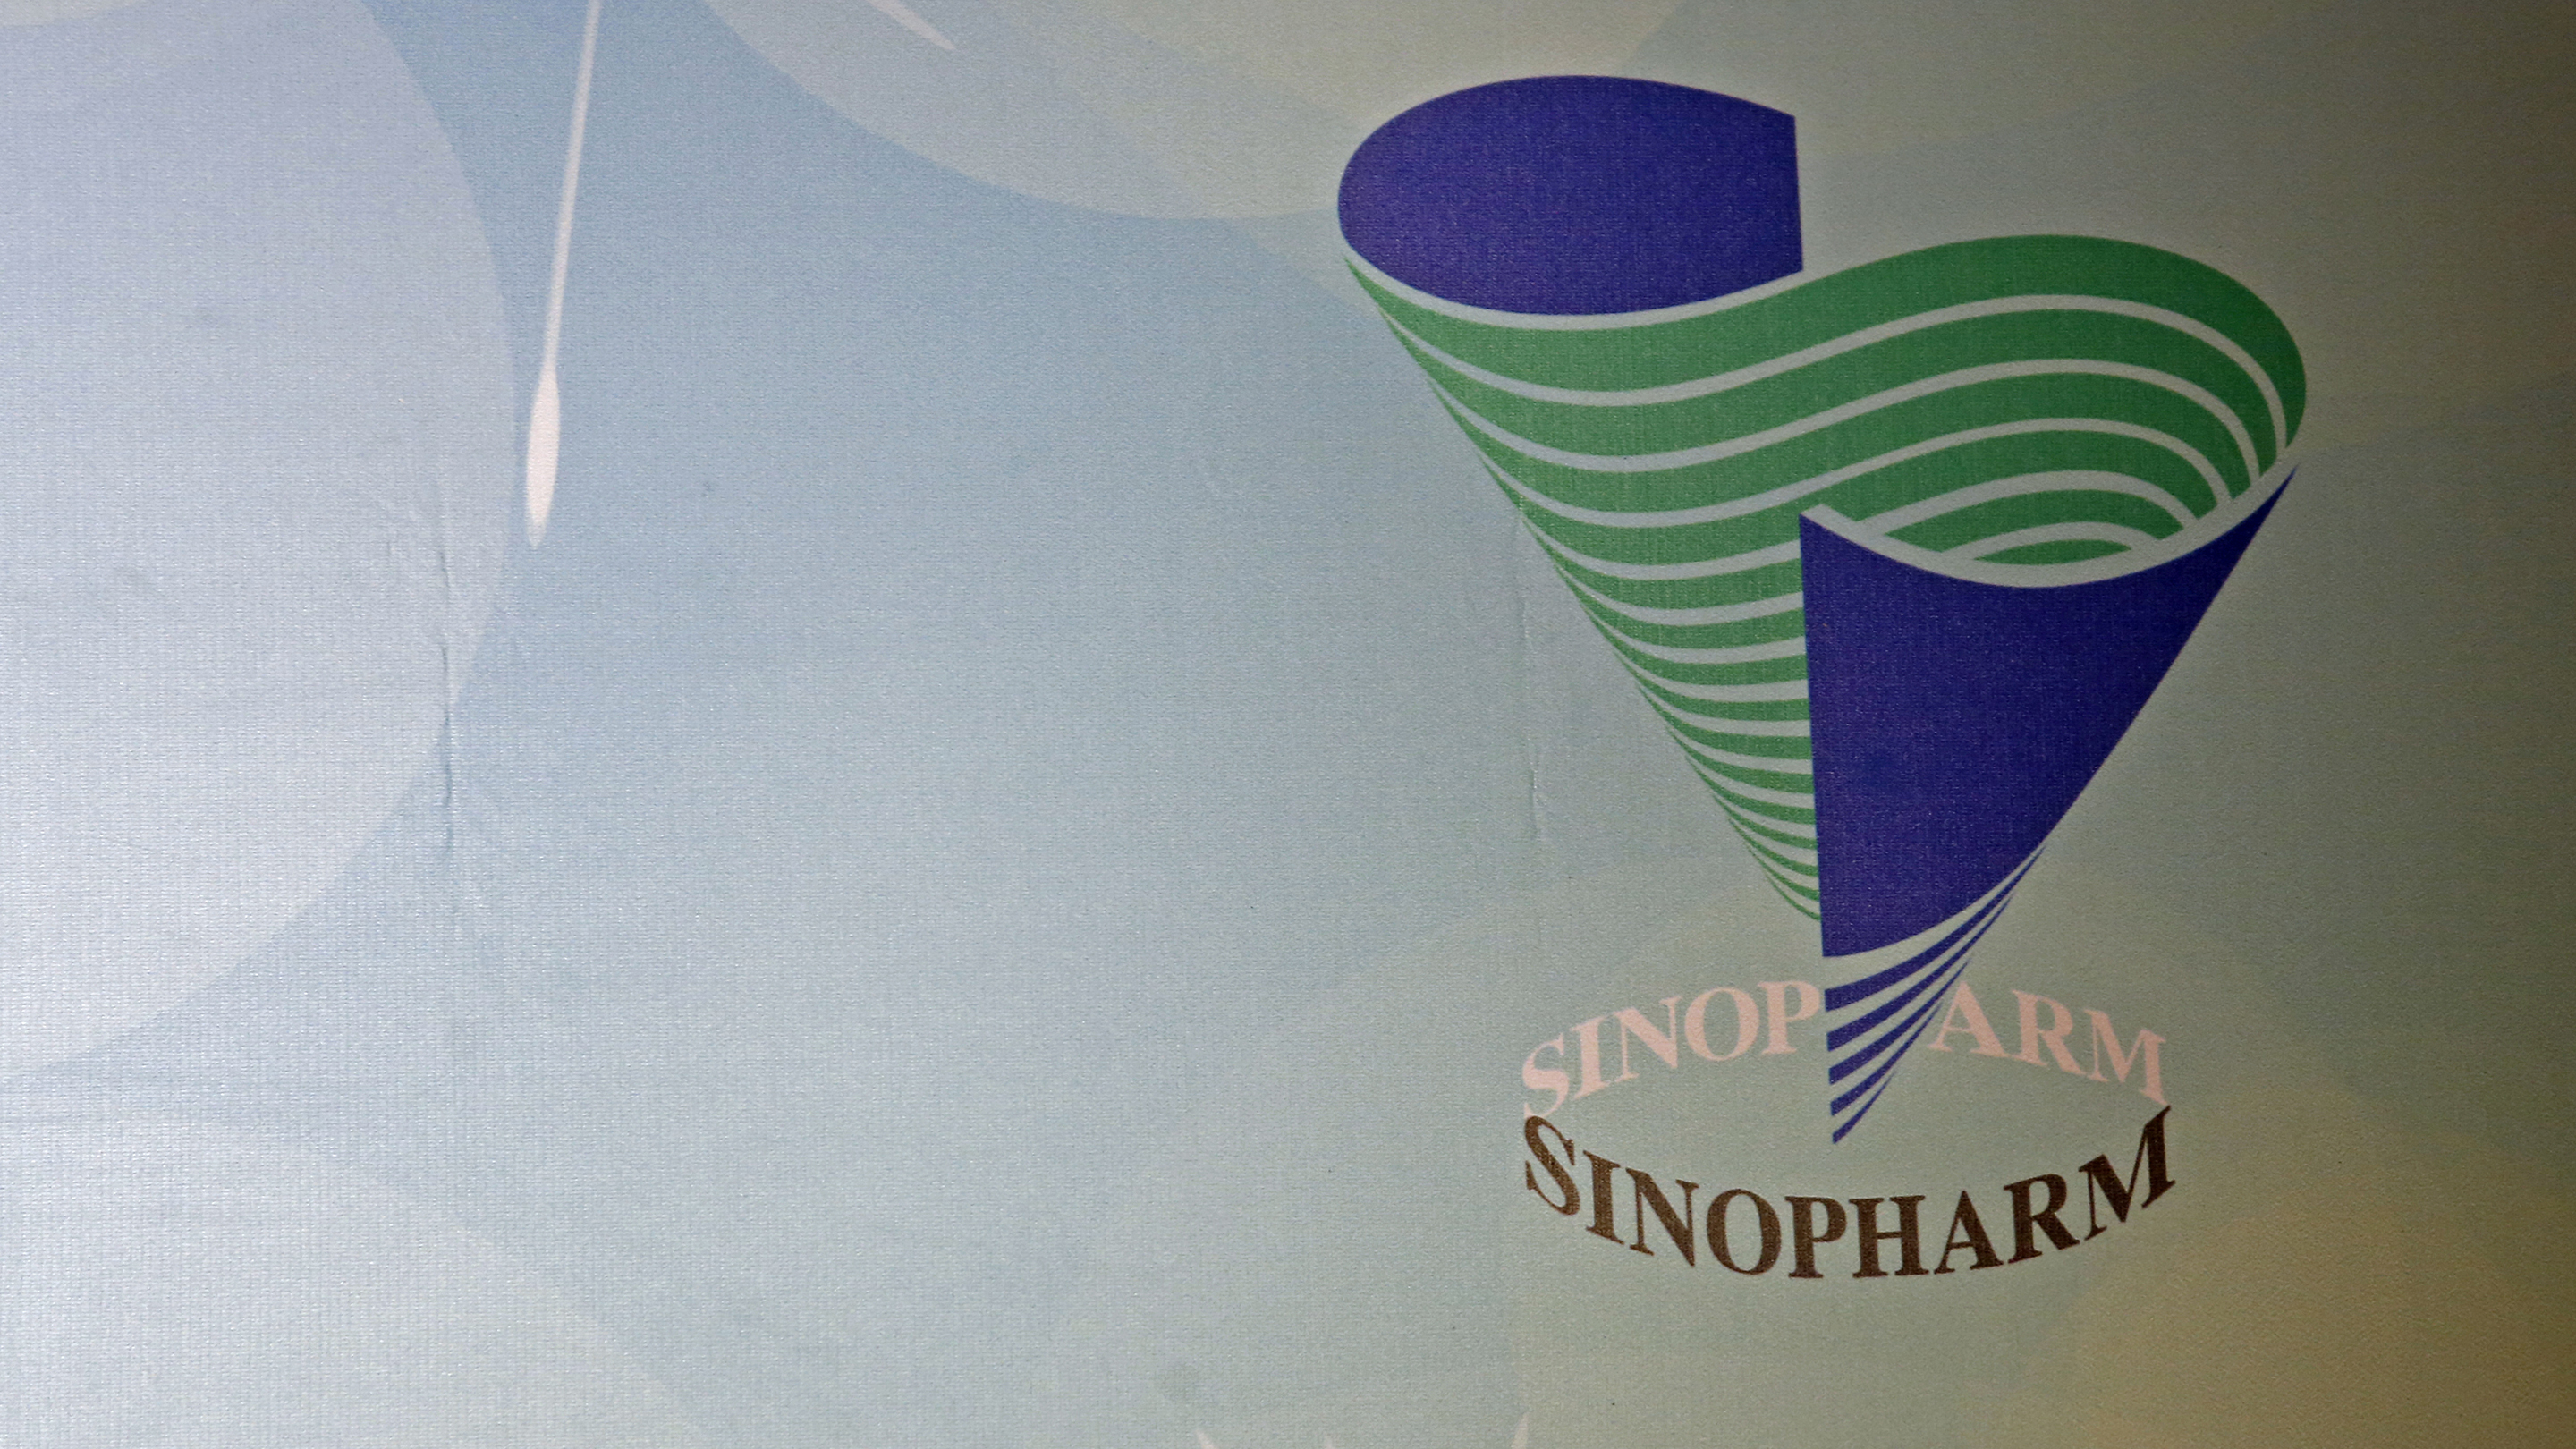 The company logo of Sinopharm Group Co Ltd is displayed at a news conference on the company's annual results in Hong Kong